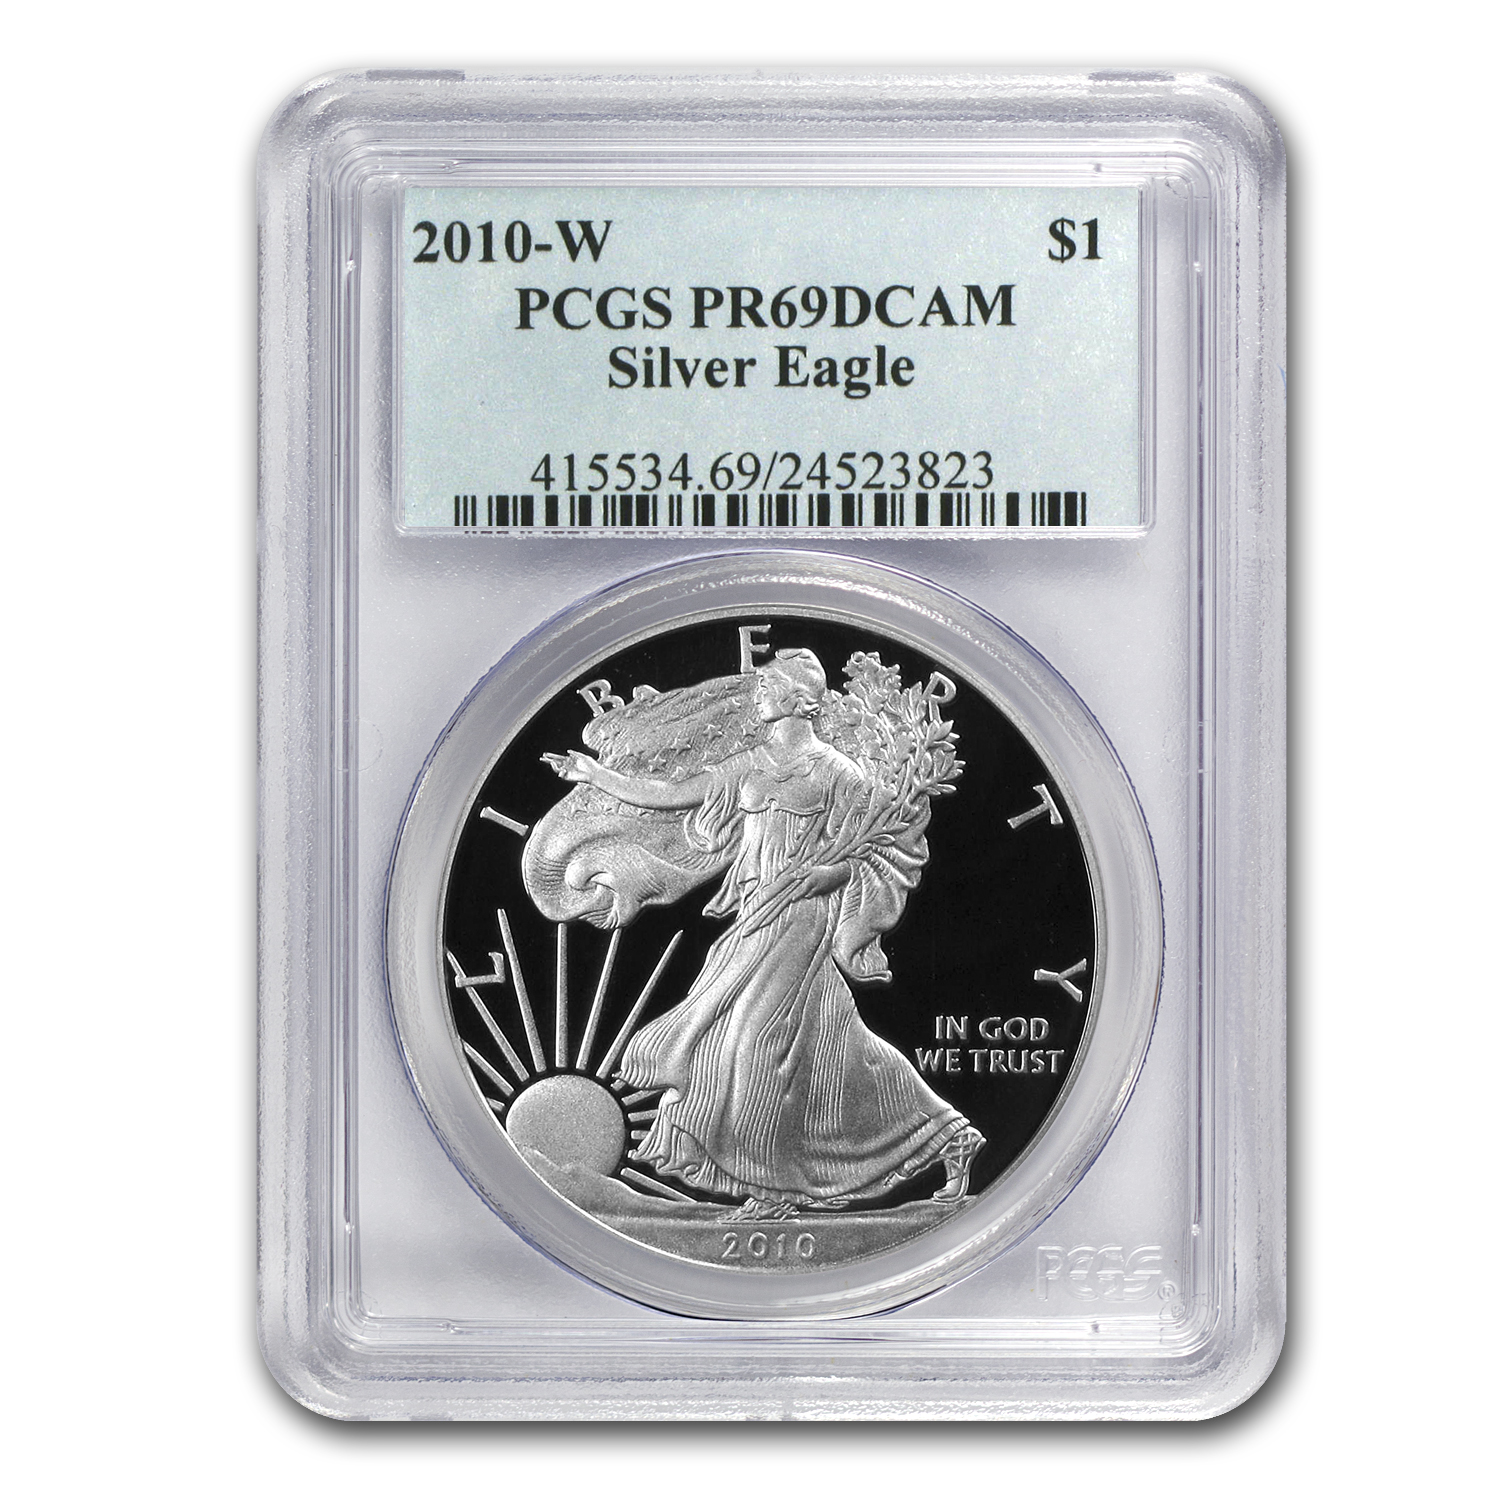 2010-W Proof Silver American Eagle PR-69 PCGS